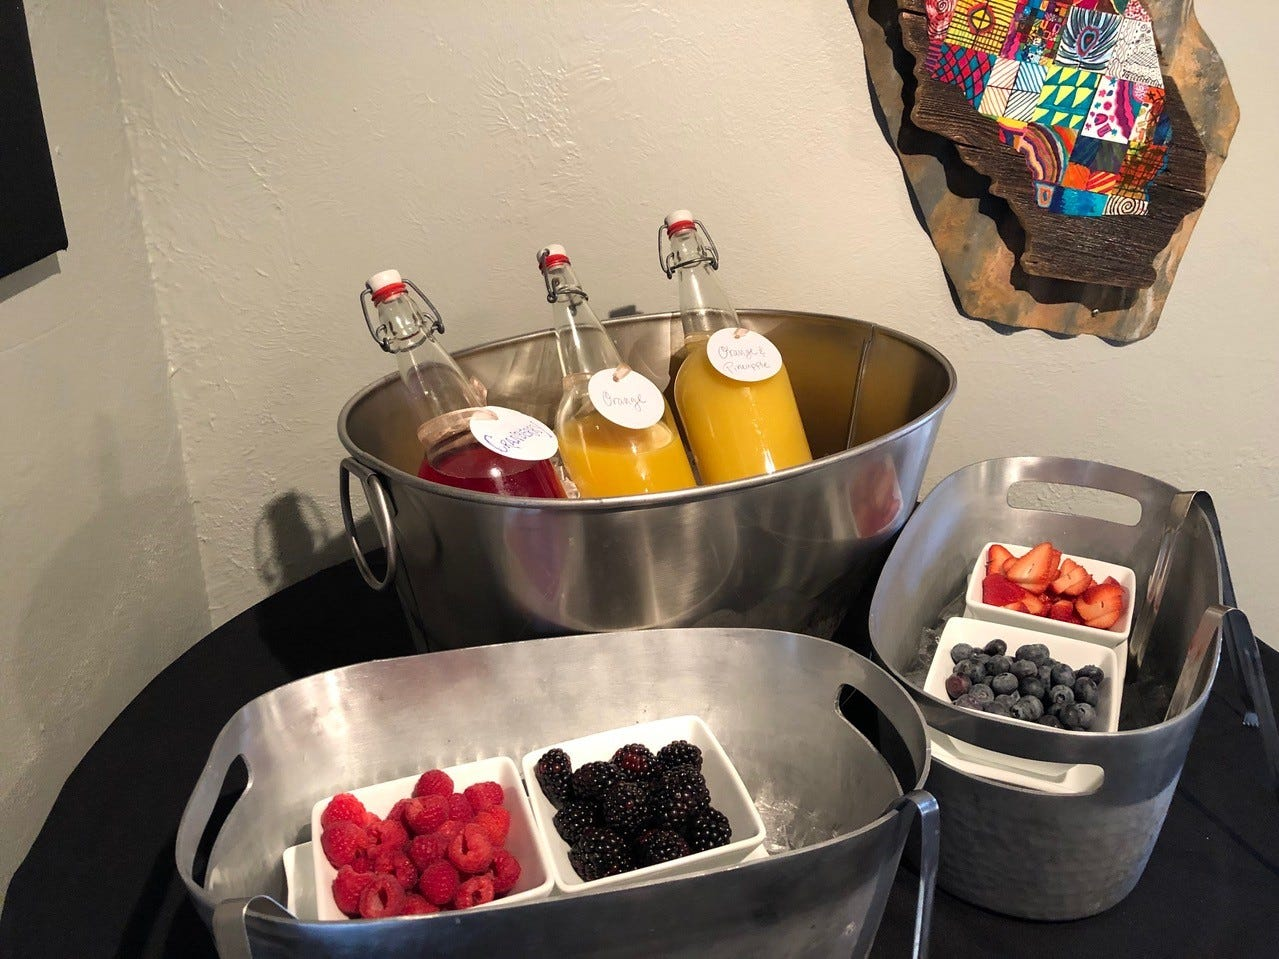 In February 2019,  the mimosa bar at Vintage Public House is part of Sunday brunch from 10 a.m. to 2 p.m.